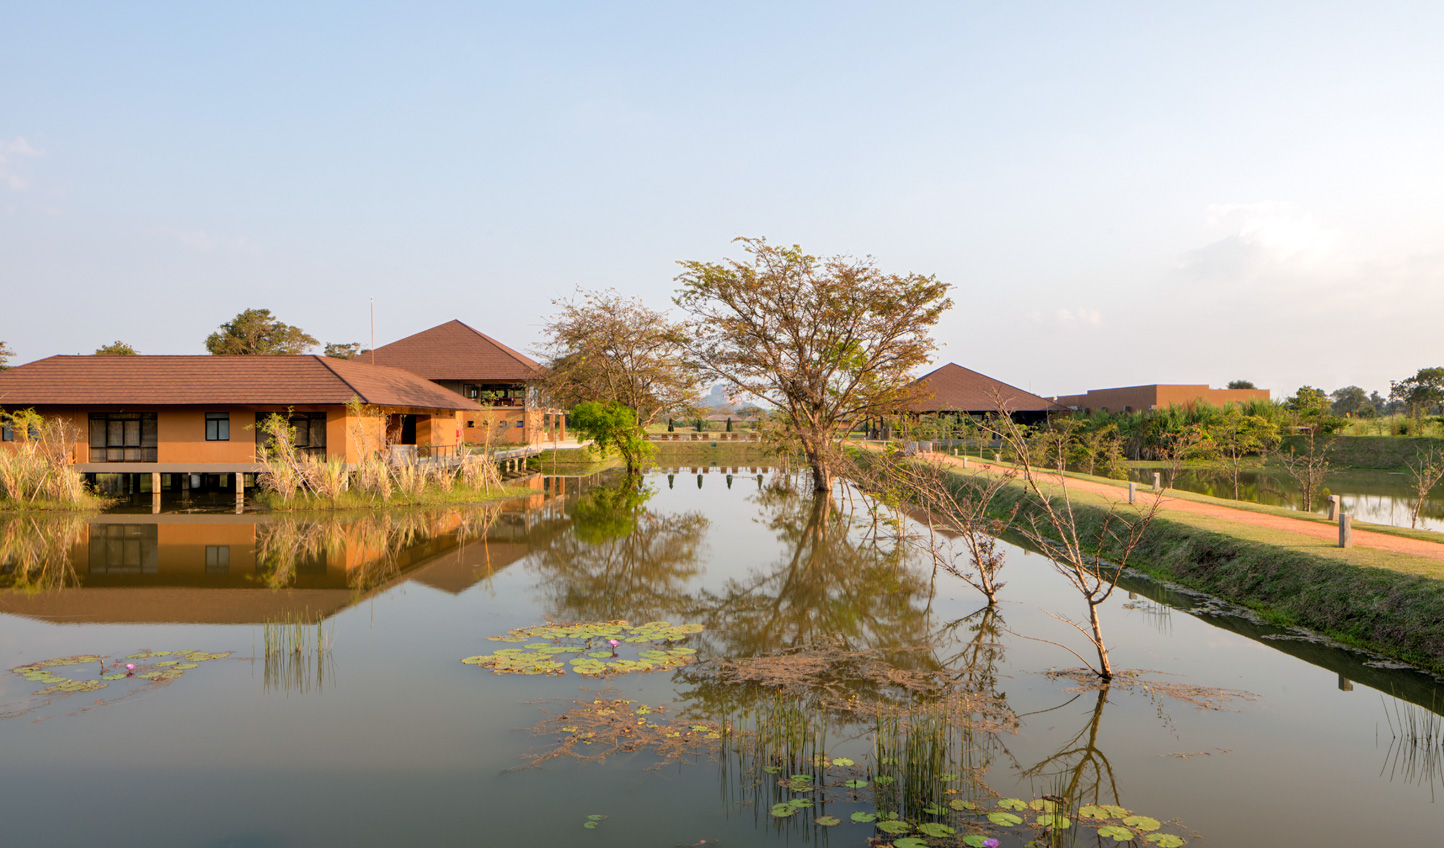 Stroll along the meandering waterways to your peaceful villa